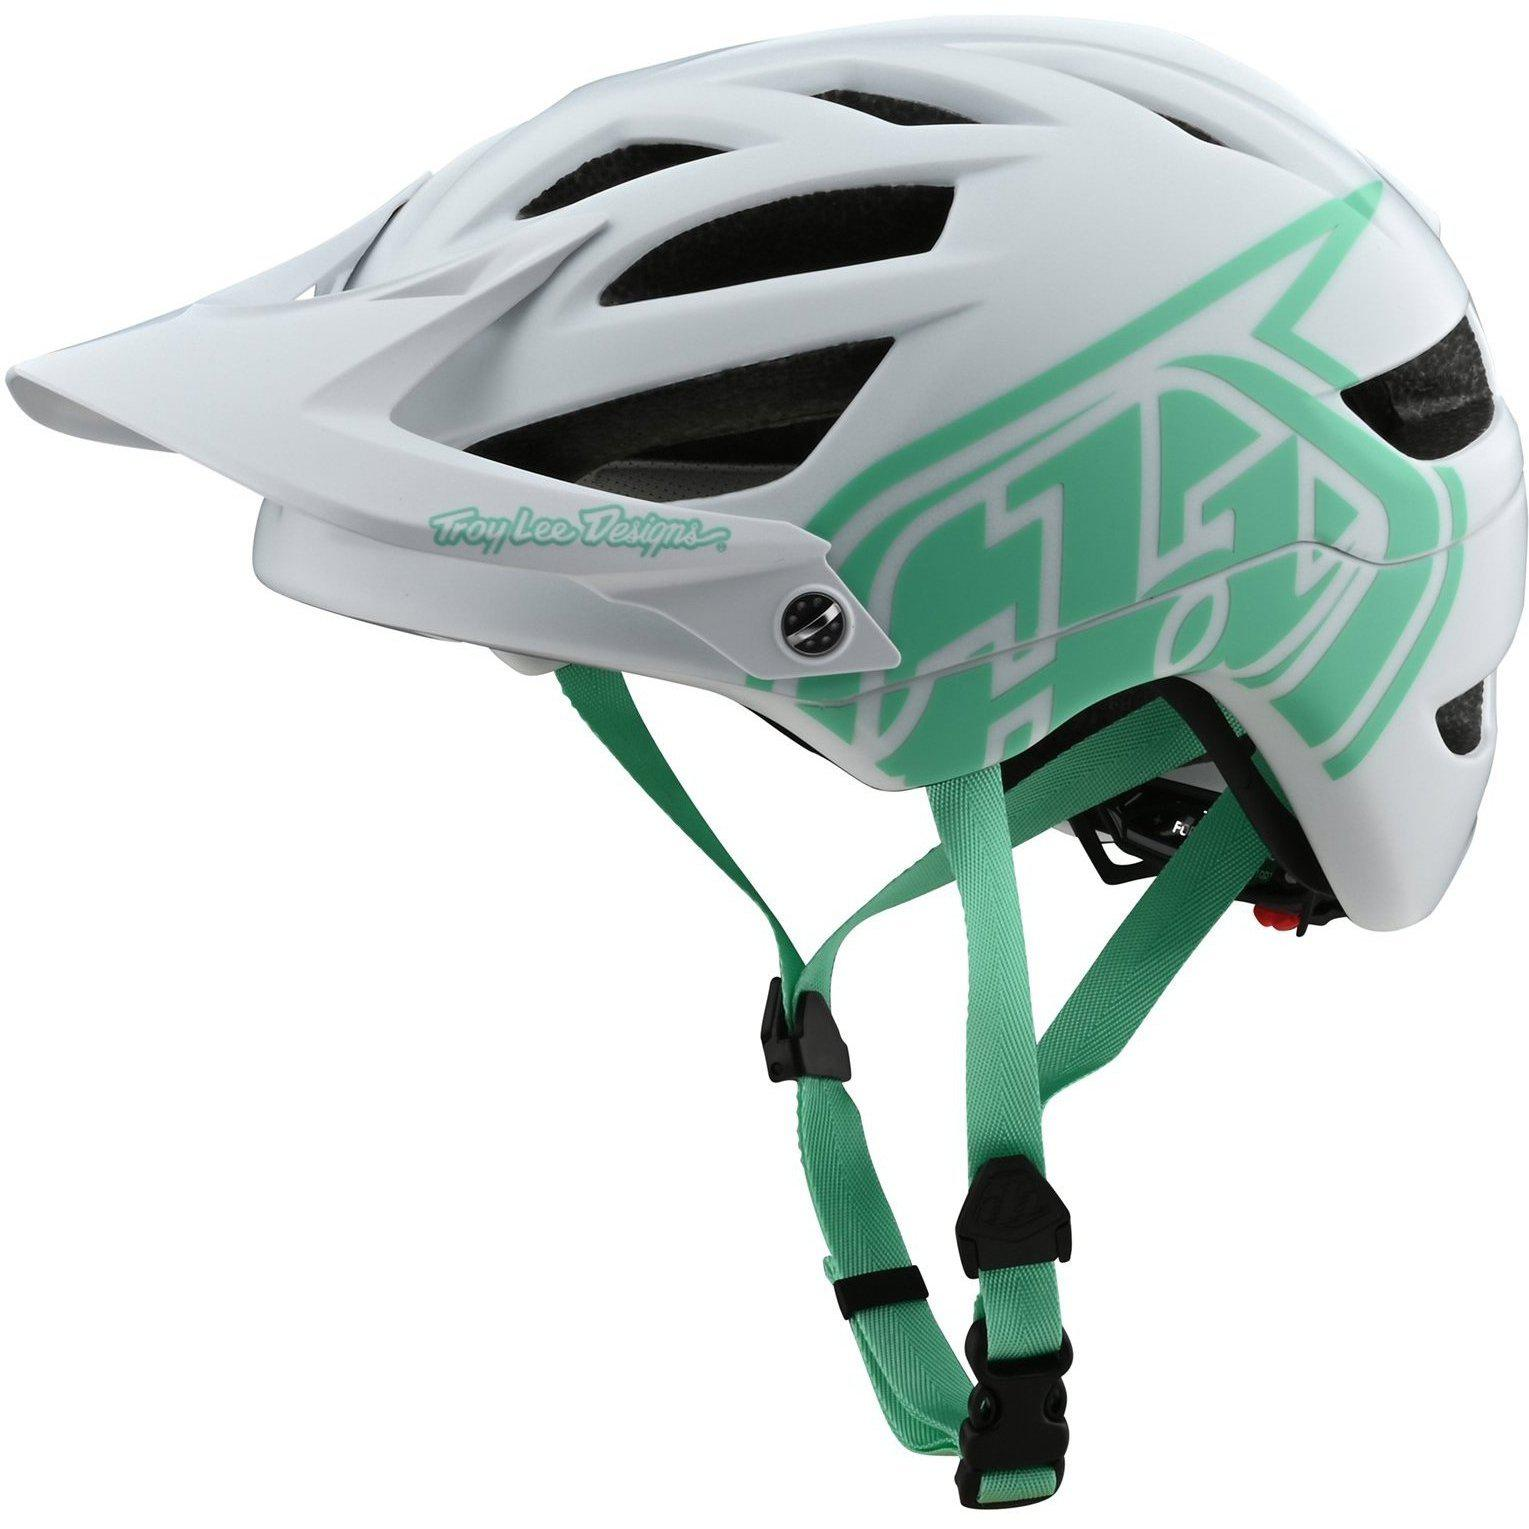 Troy Lee Designs-Troy Lee Designs A1 Drone Helmet-Drone - White/Aqua-M/L-TLD131097133-saddleback-elite-performance-cycling